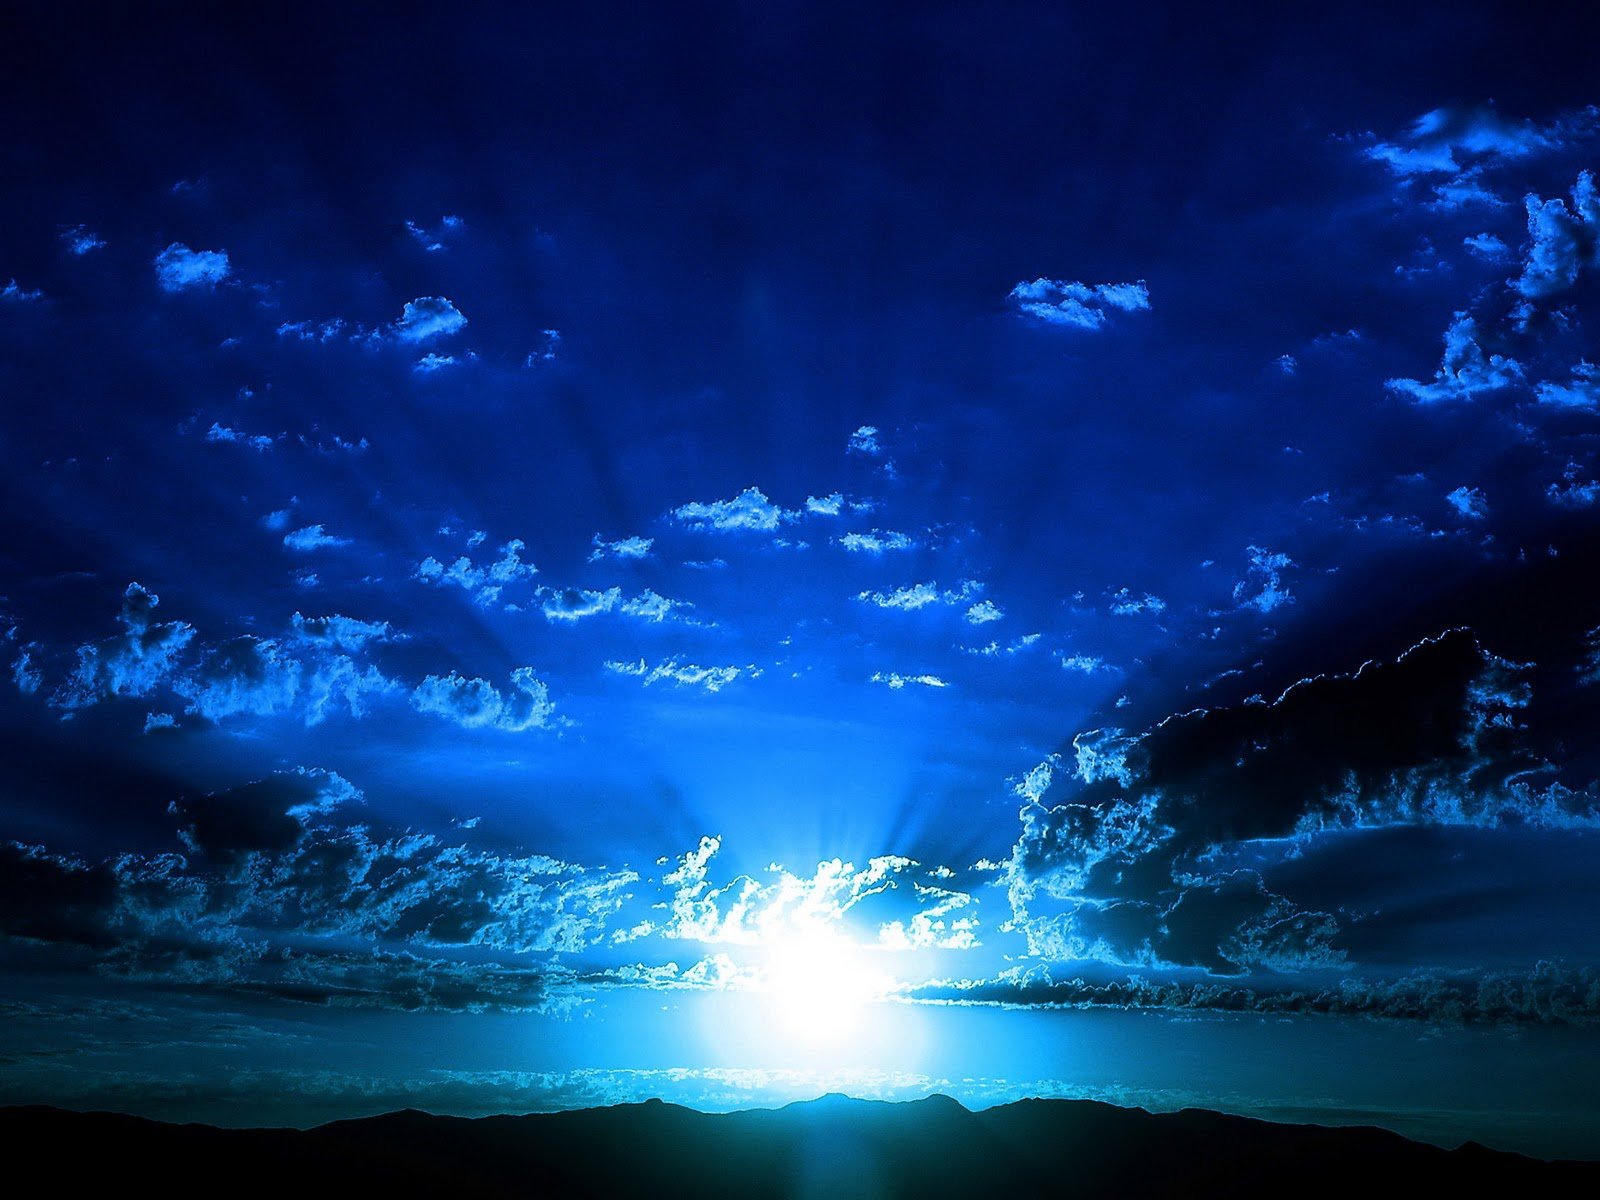 blue night sky background - photo #27